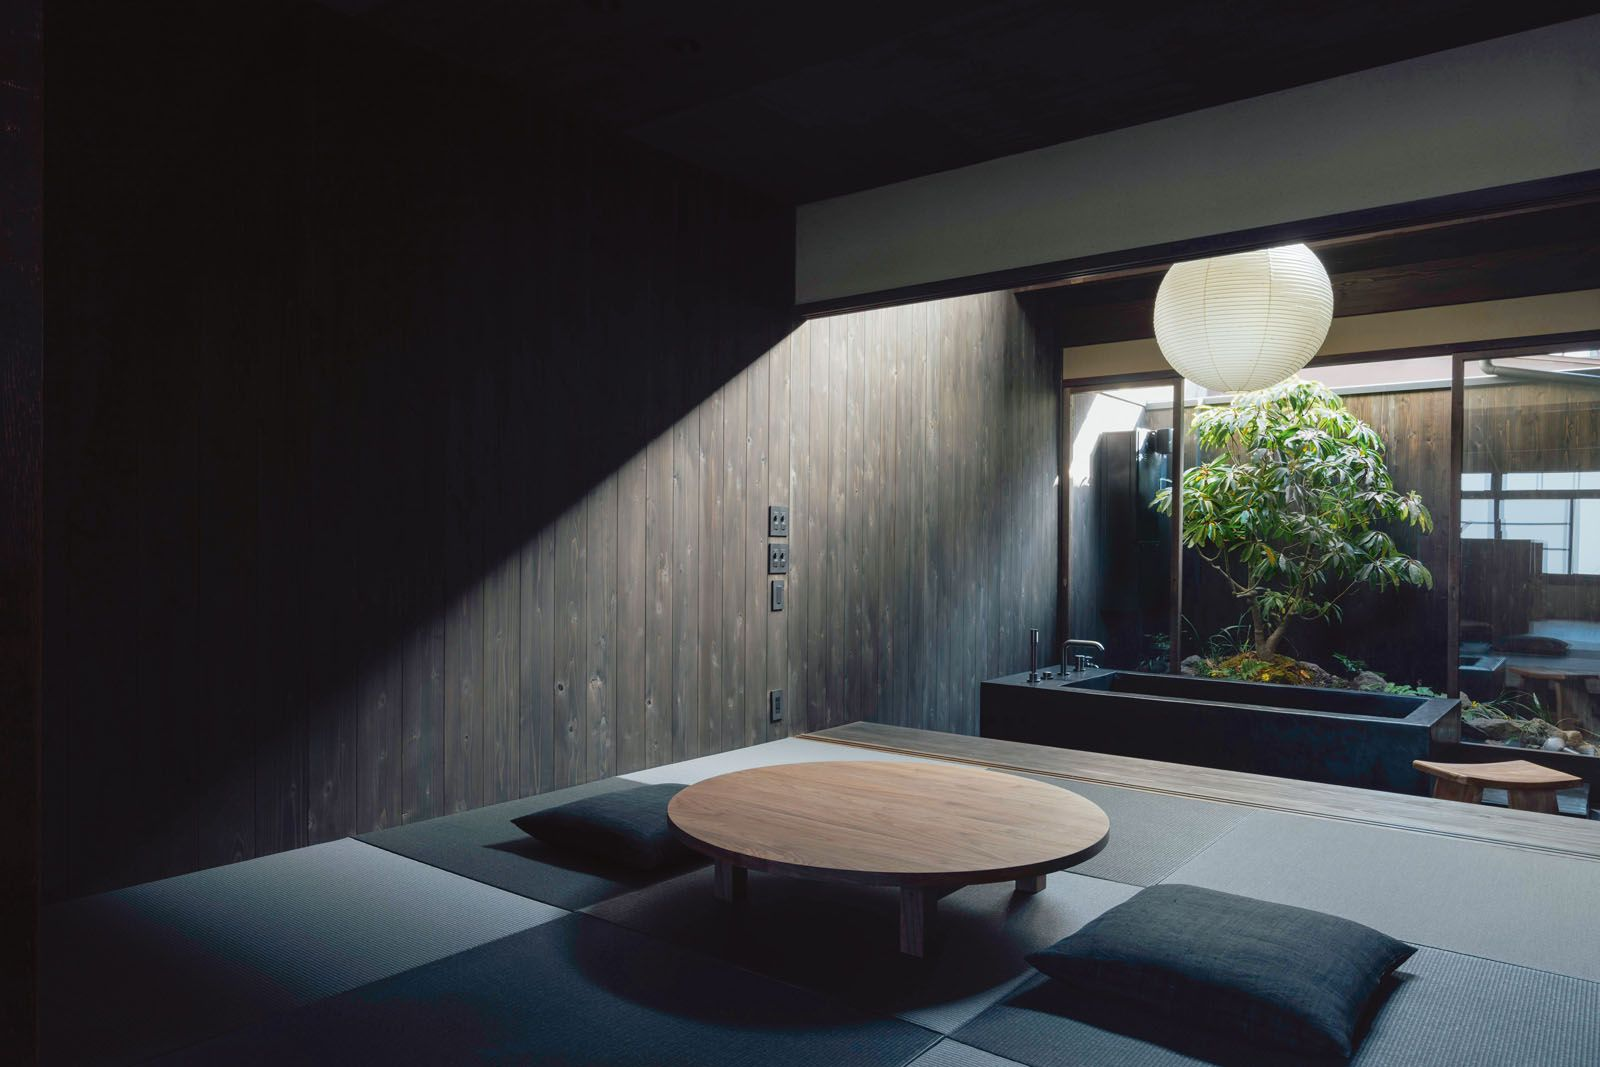 Maana Homes Is The Minimalist Space You Need To Find Your Zen